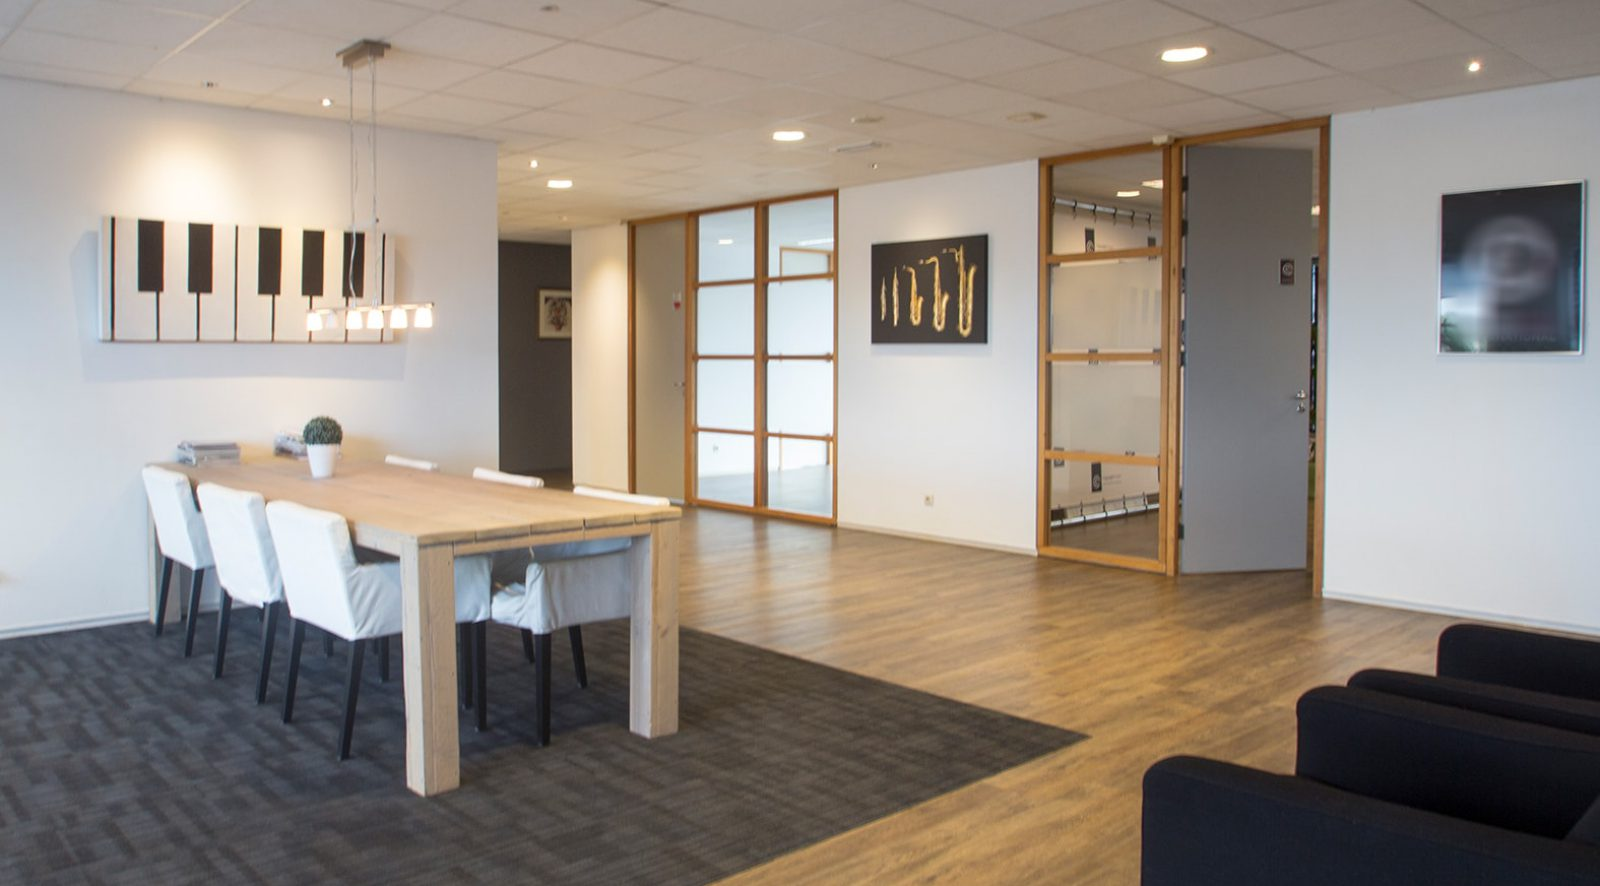 Kantoor huren in Aalsmeer | Studio's Aalsmeer | Crown Business Center Aalsmeer